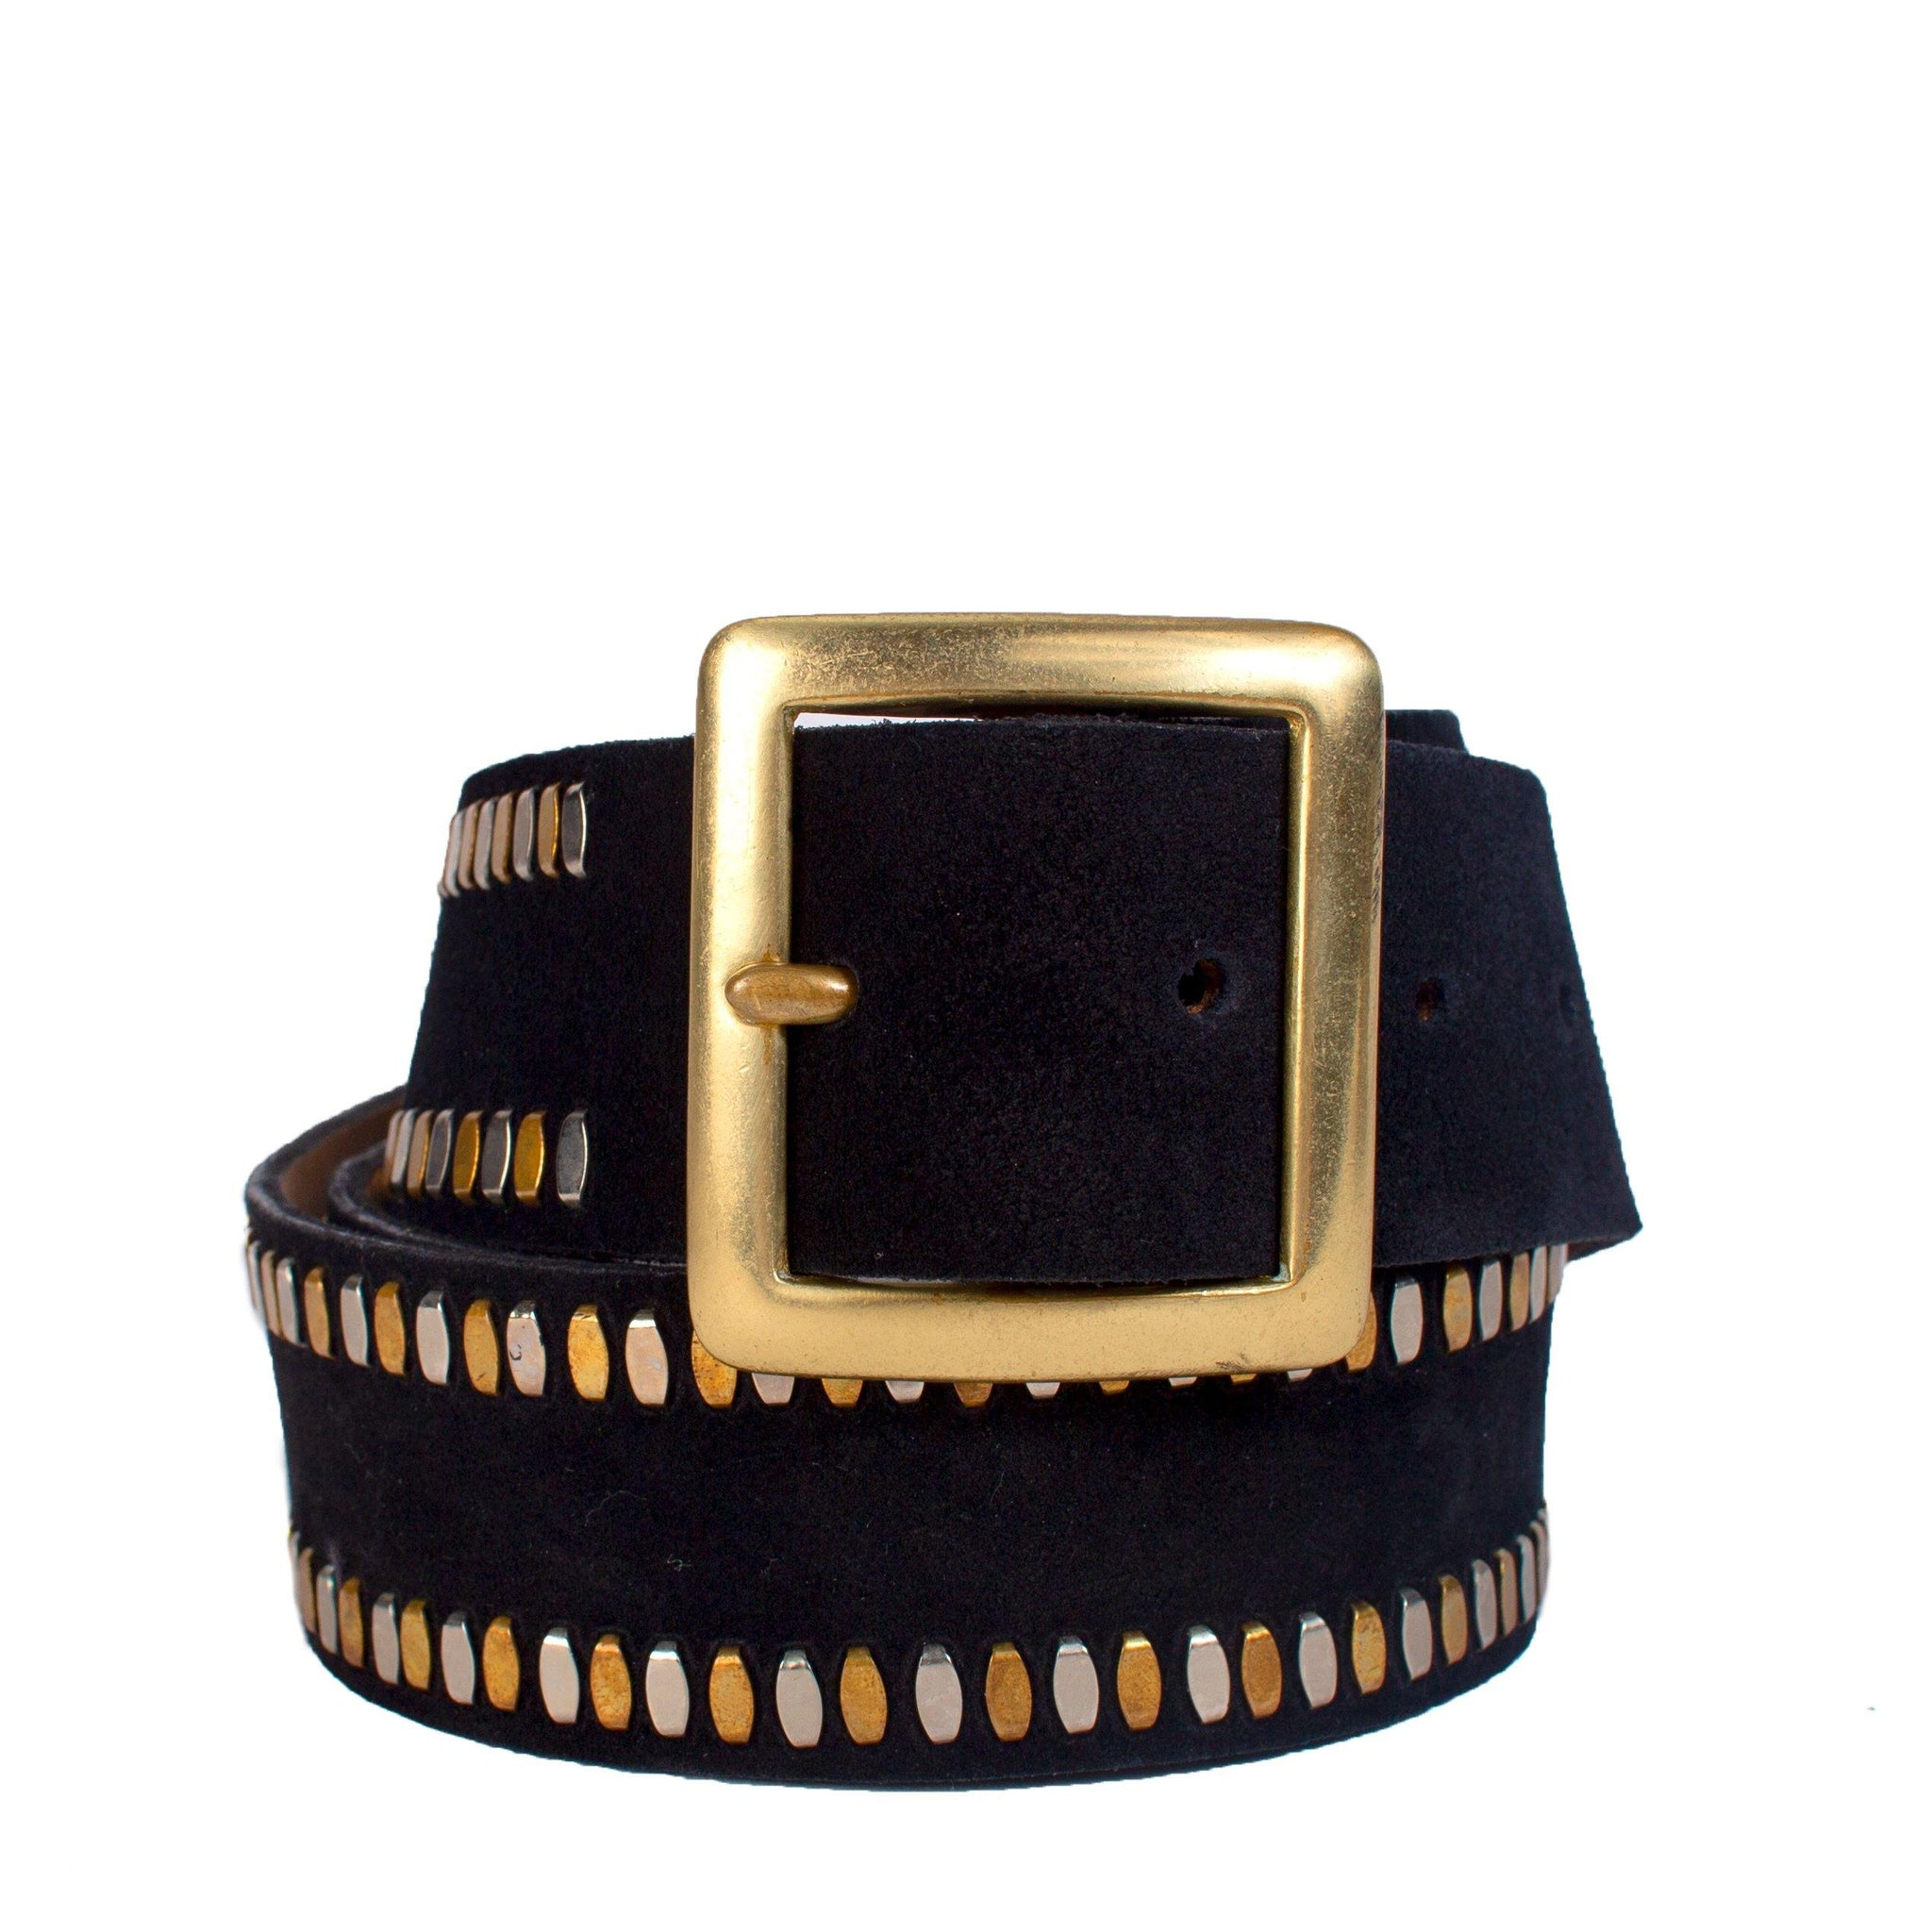 "handmade black suede leather 1.5"" belt for women with nickel and brass artwork - Calleen Cordero Designs"